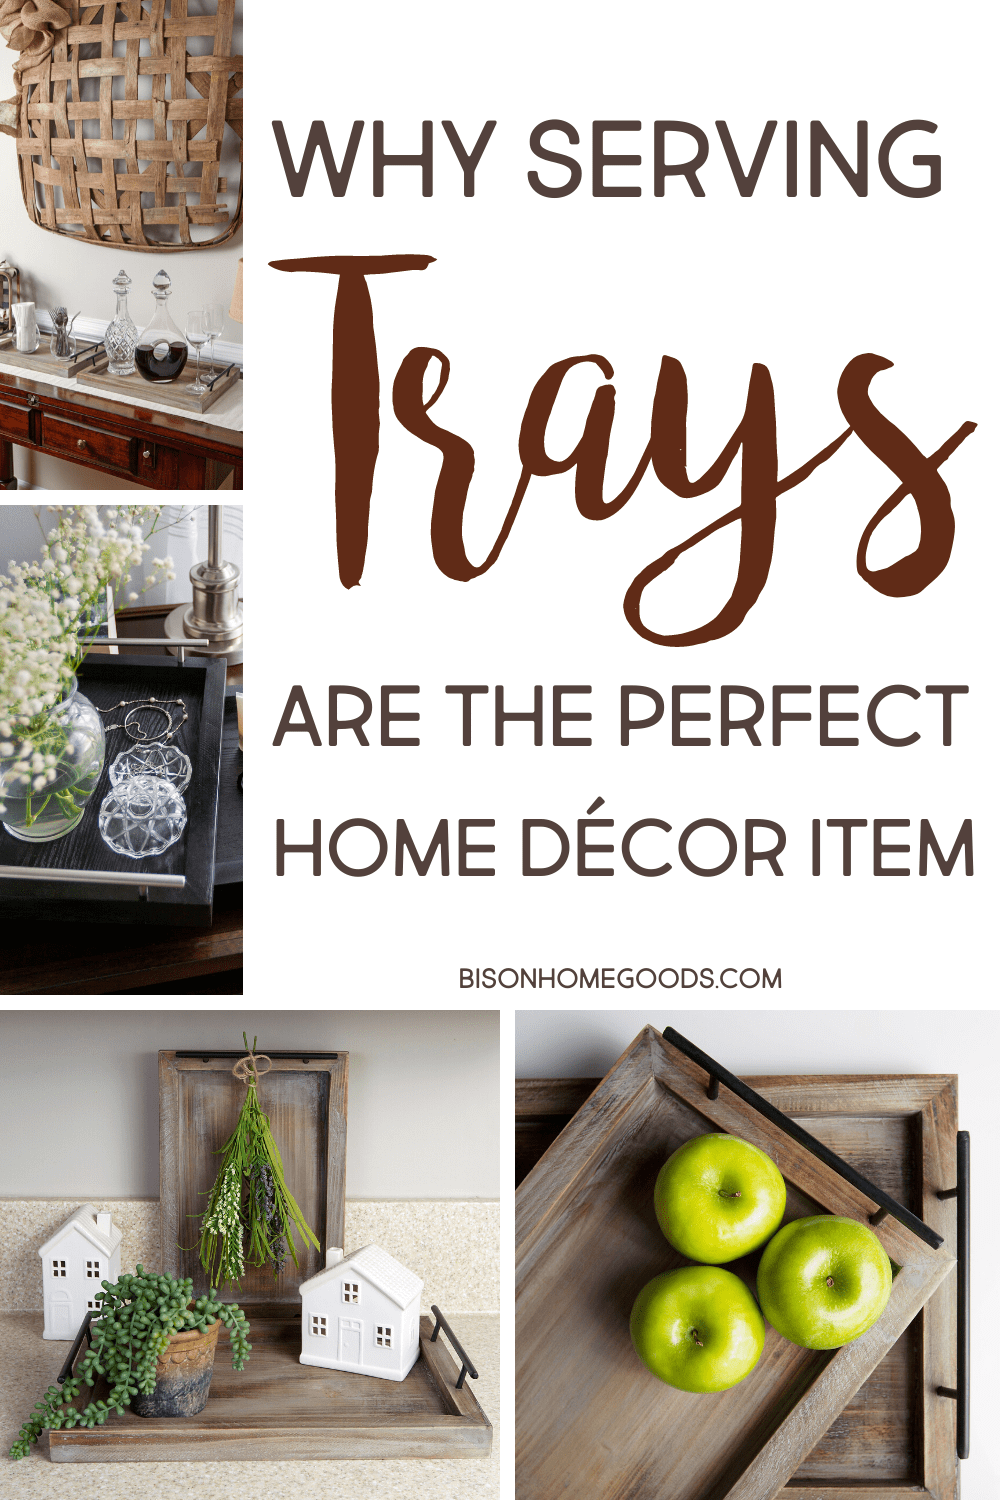 Why Serving Trays Are the Perfect Home Décor Item